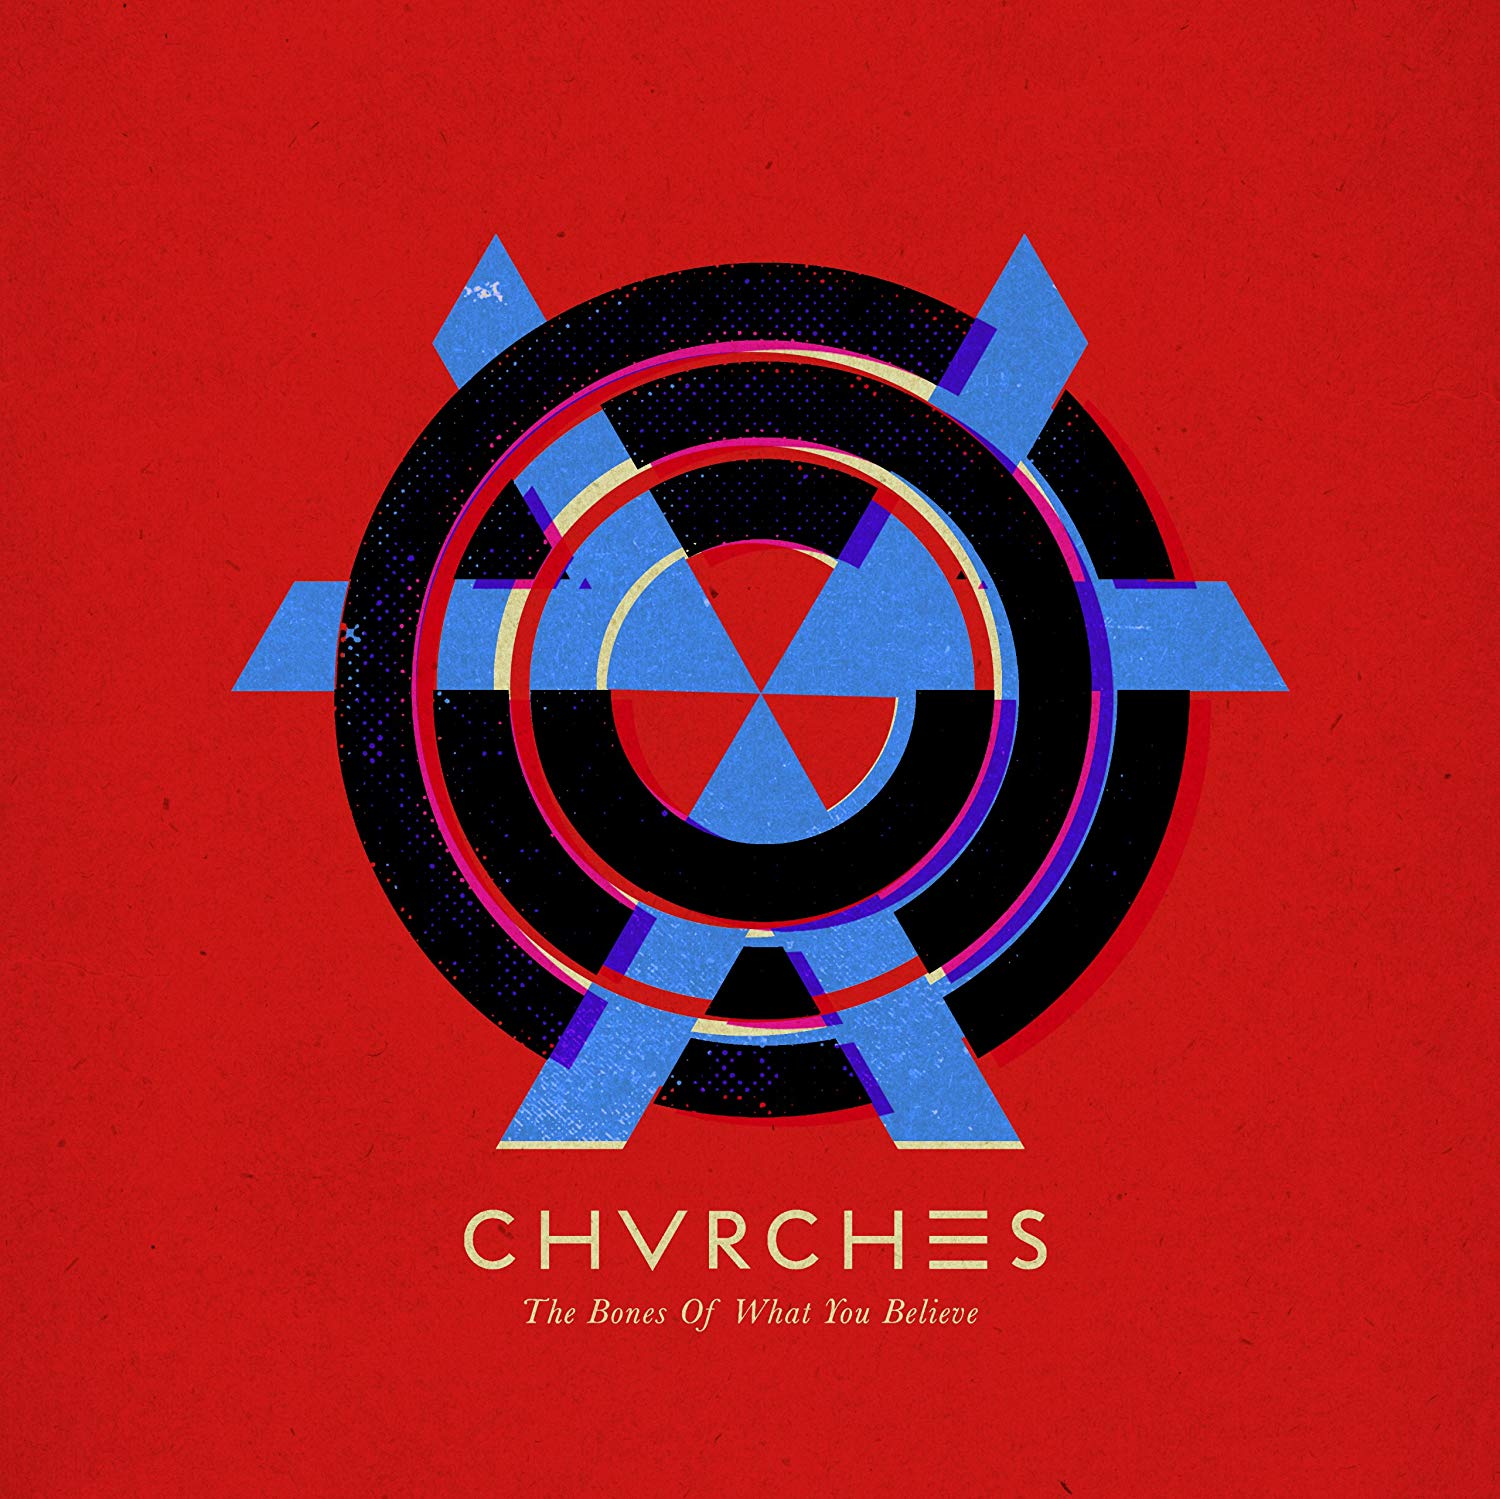 CHVRCHES THE BONES